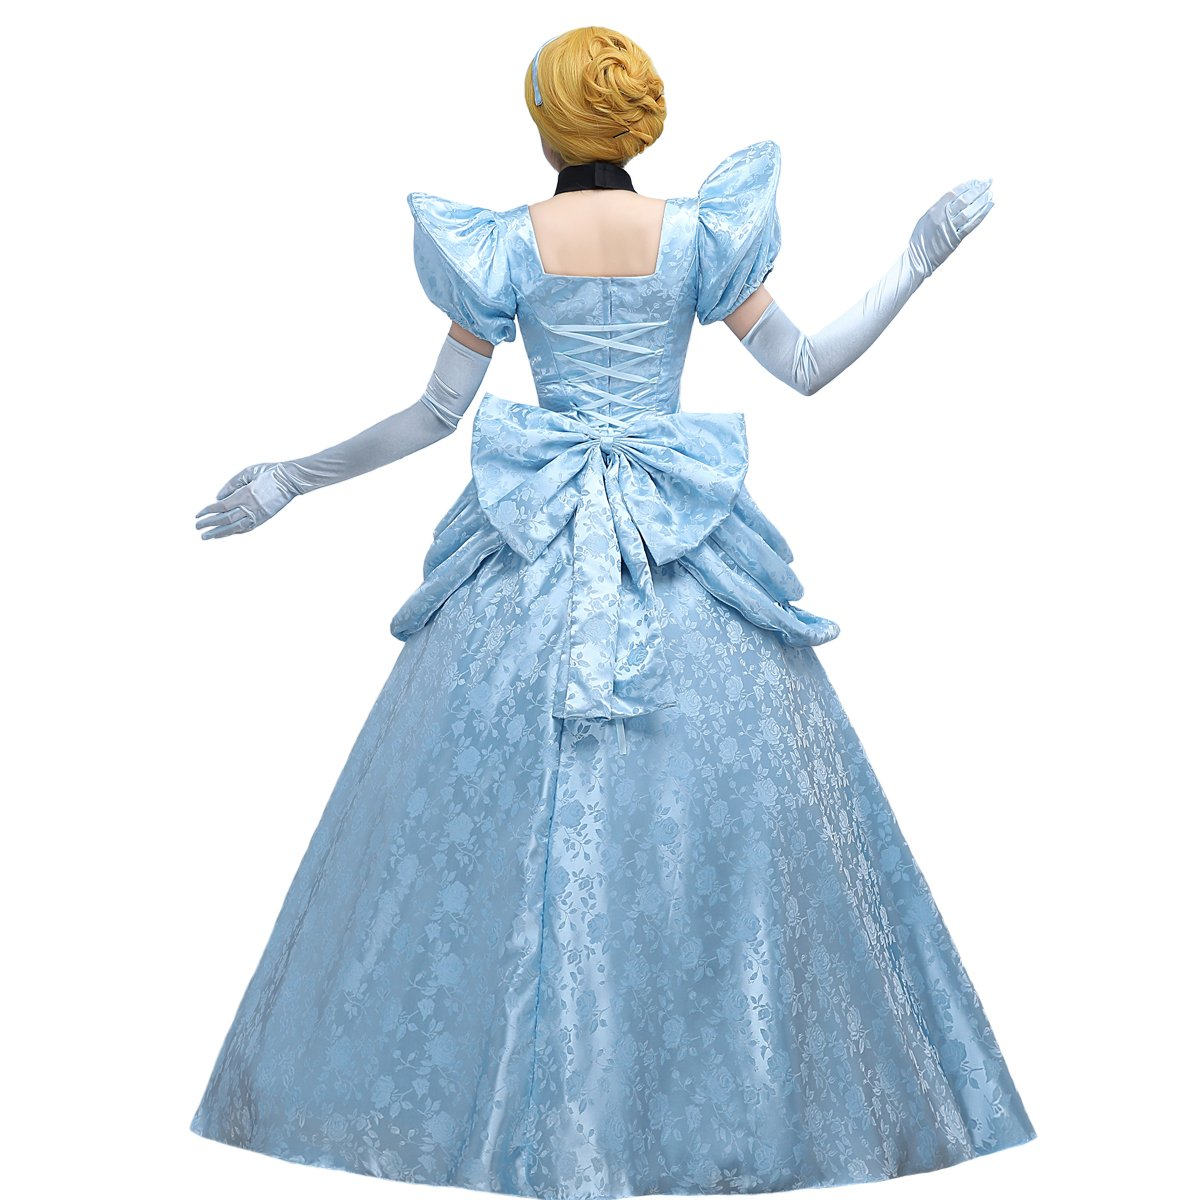 Angelaicos Women's Luxury Light Blue Party Long Dress Costume Ball Gown (L) by Angelaicos (Image #5)